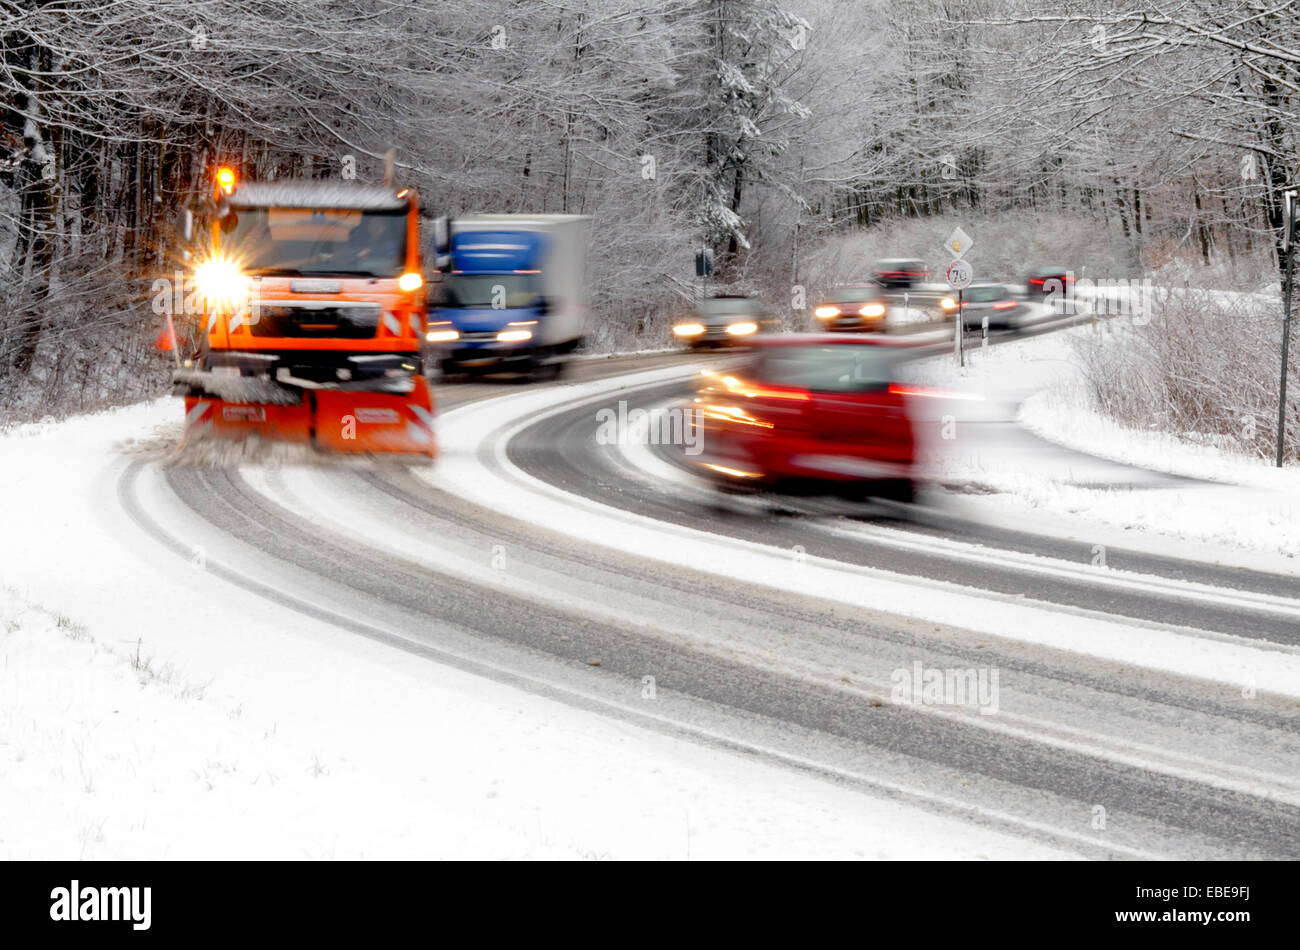 snowplow and cars on snowy winter road - Stock Image